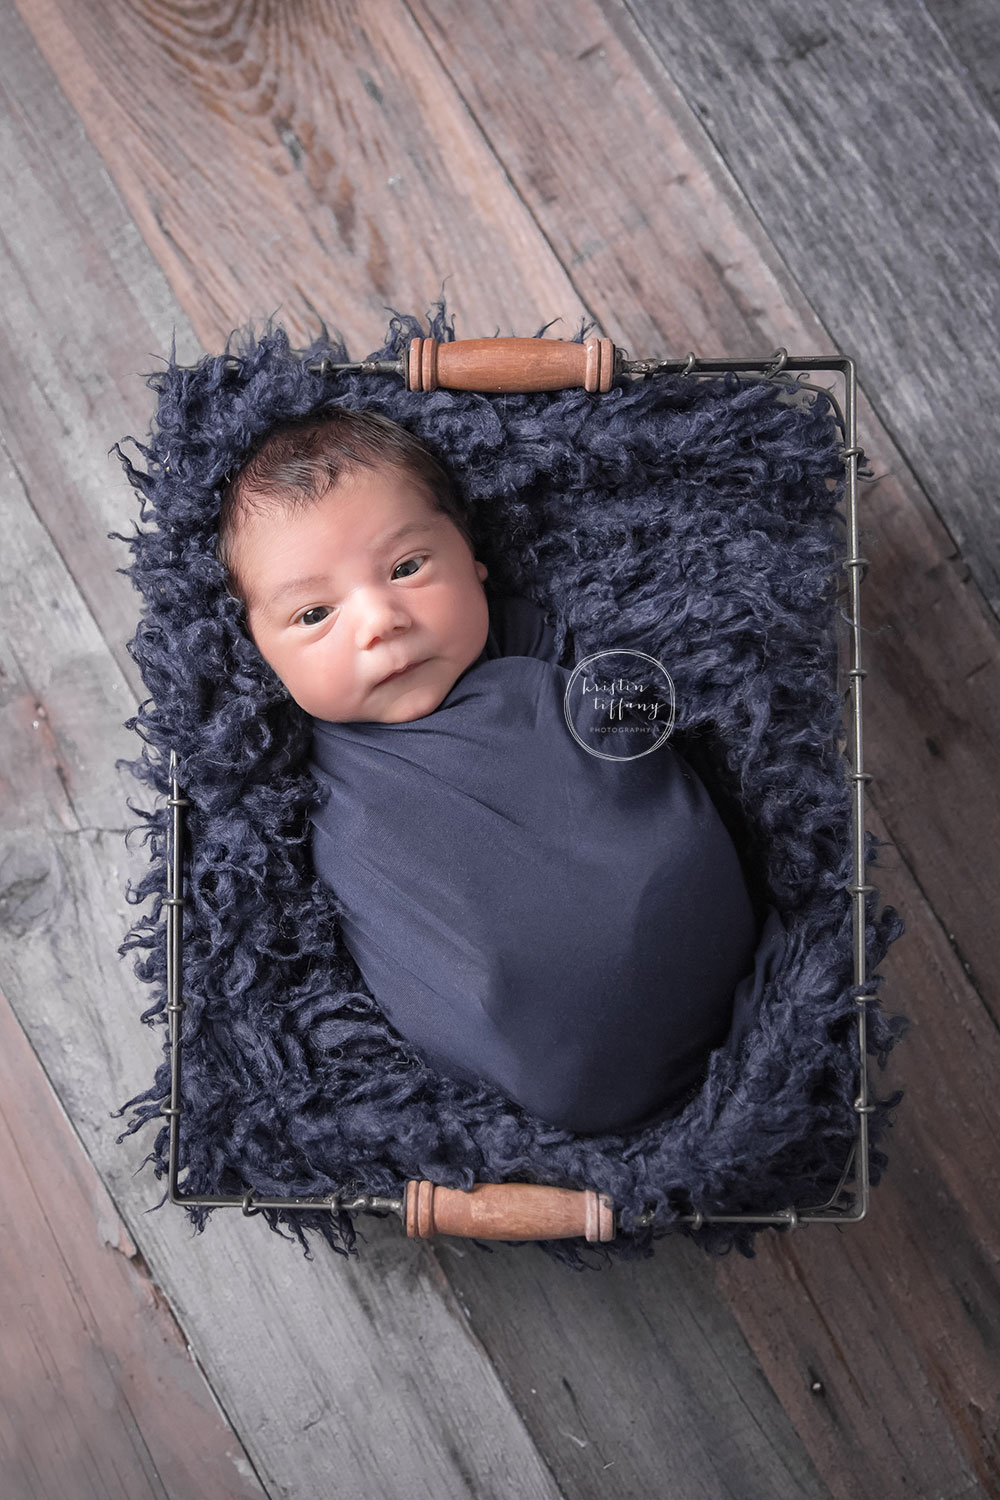 a photo of a baby boy in a wire basket